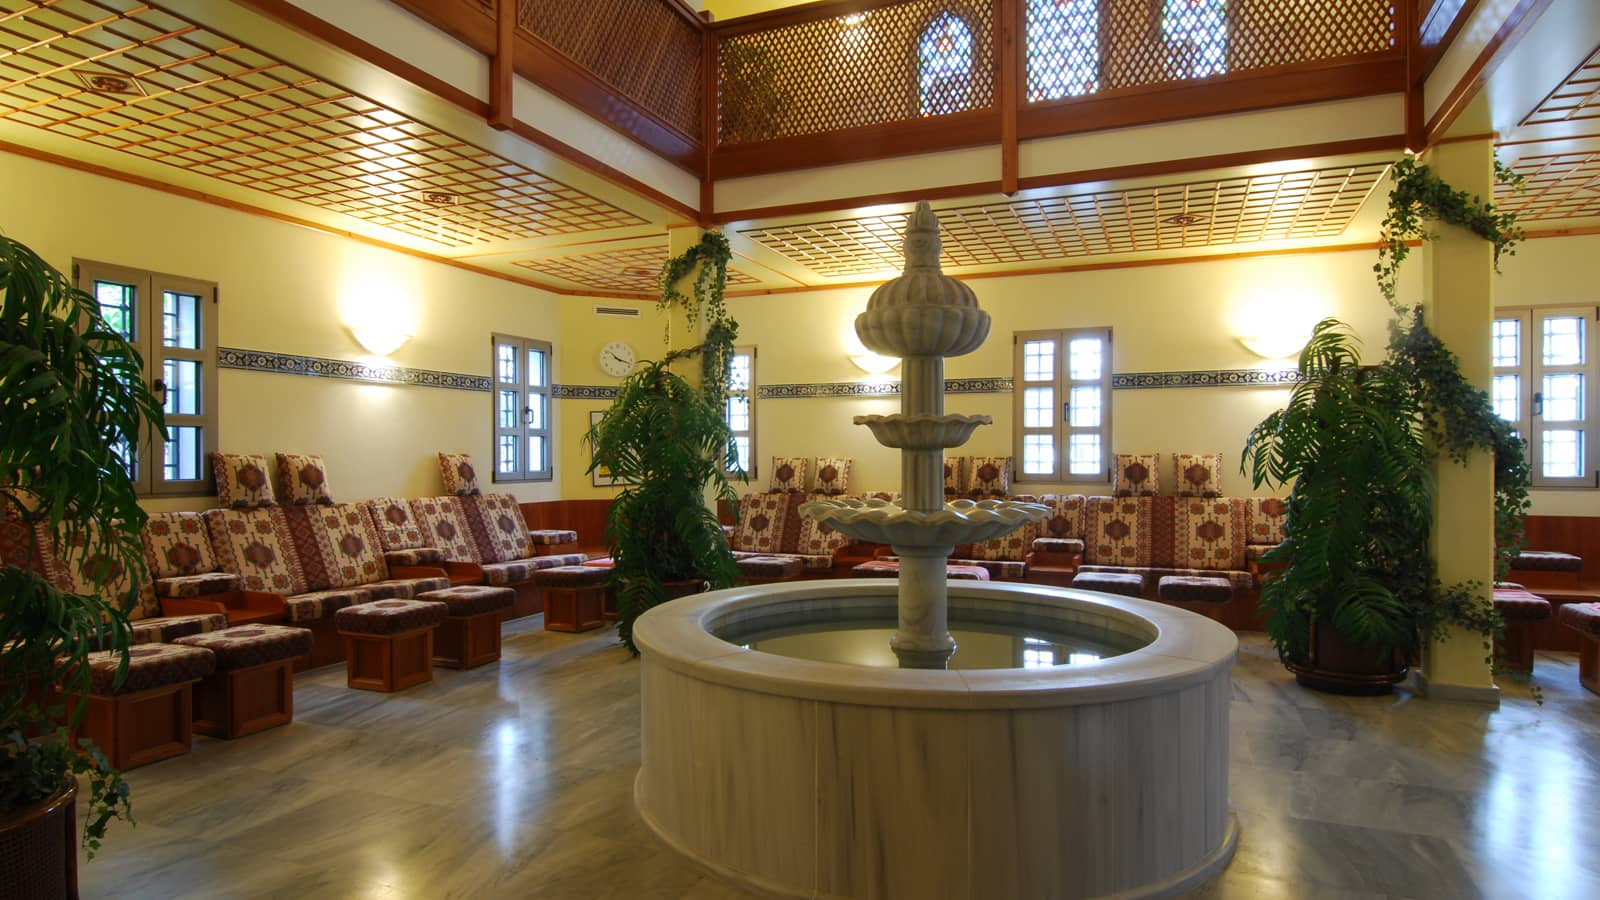 Aside Archive - Sibyllenbad spa and wellness